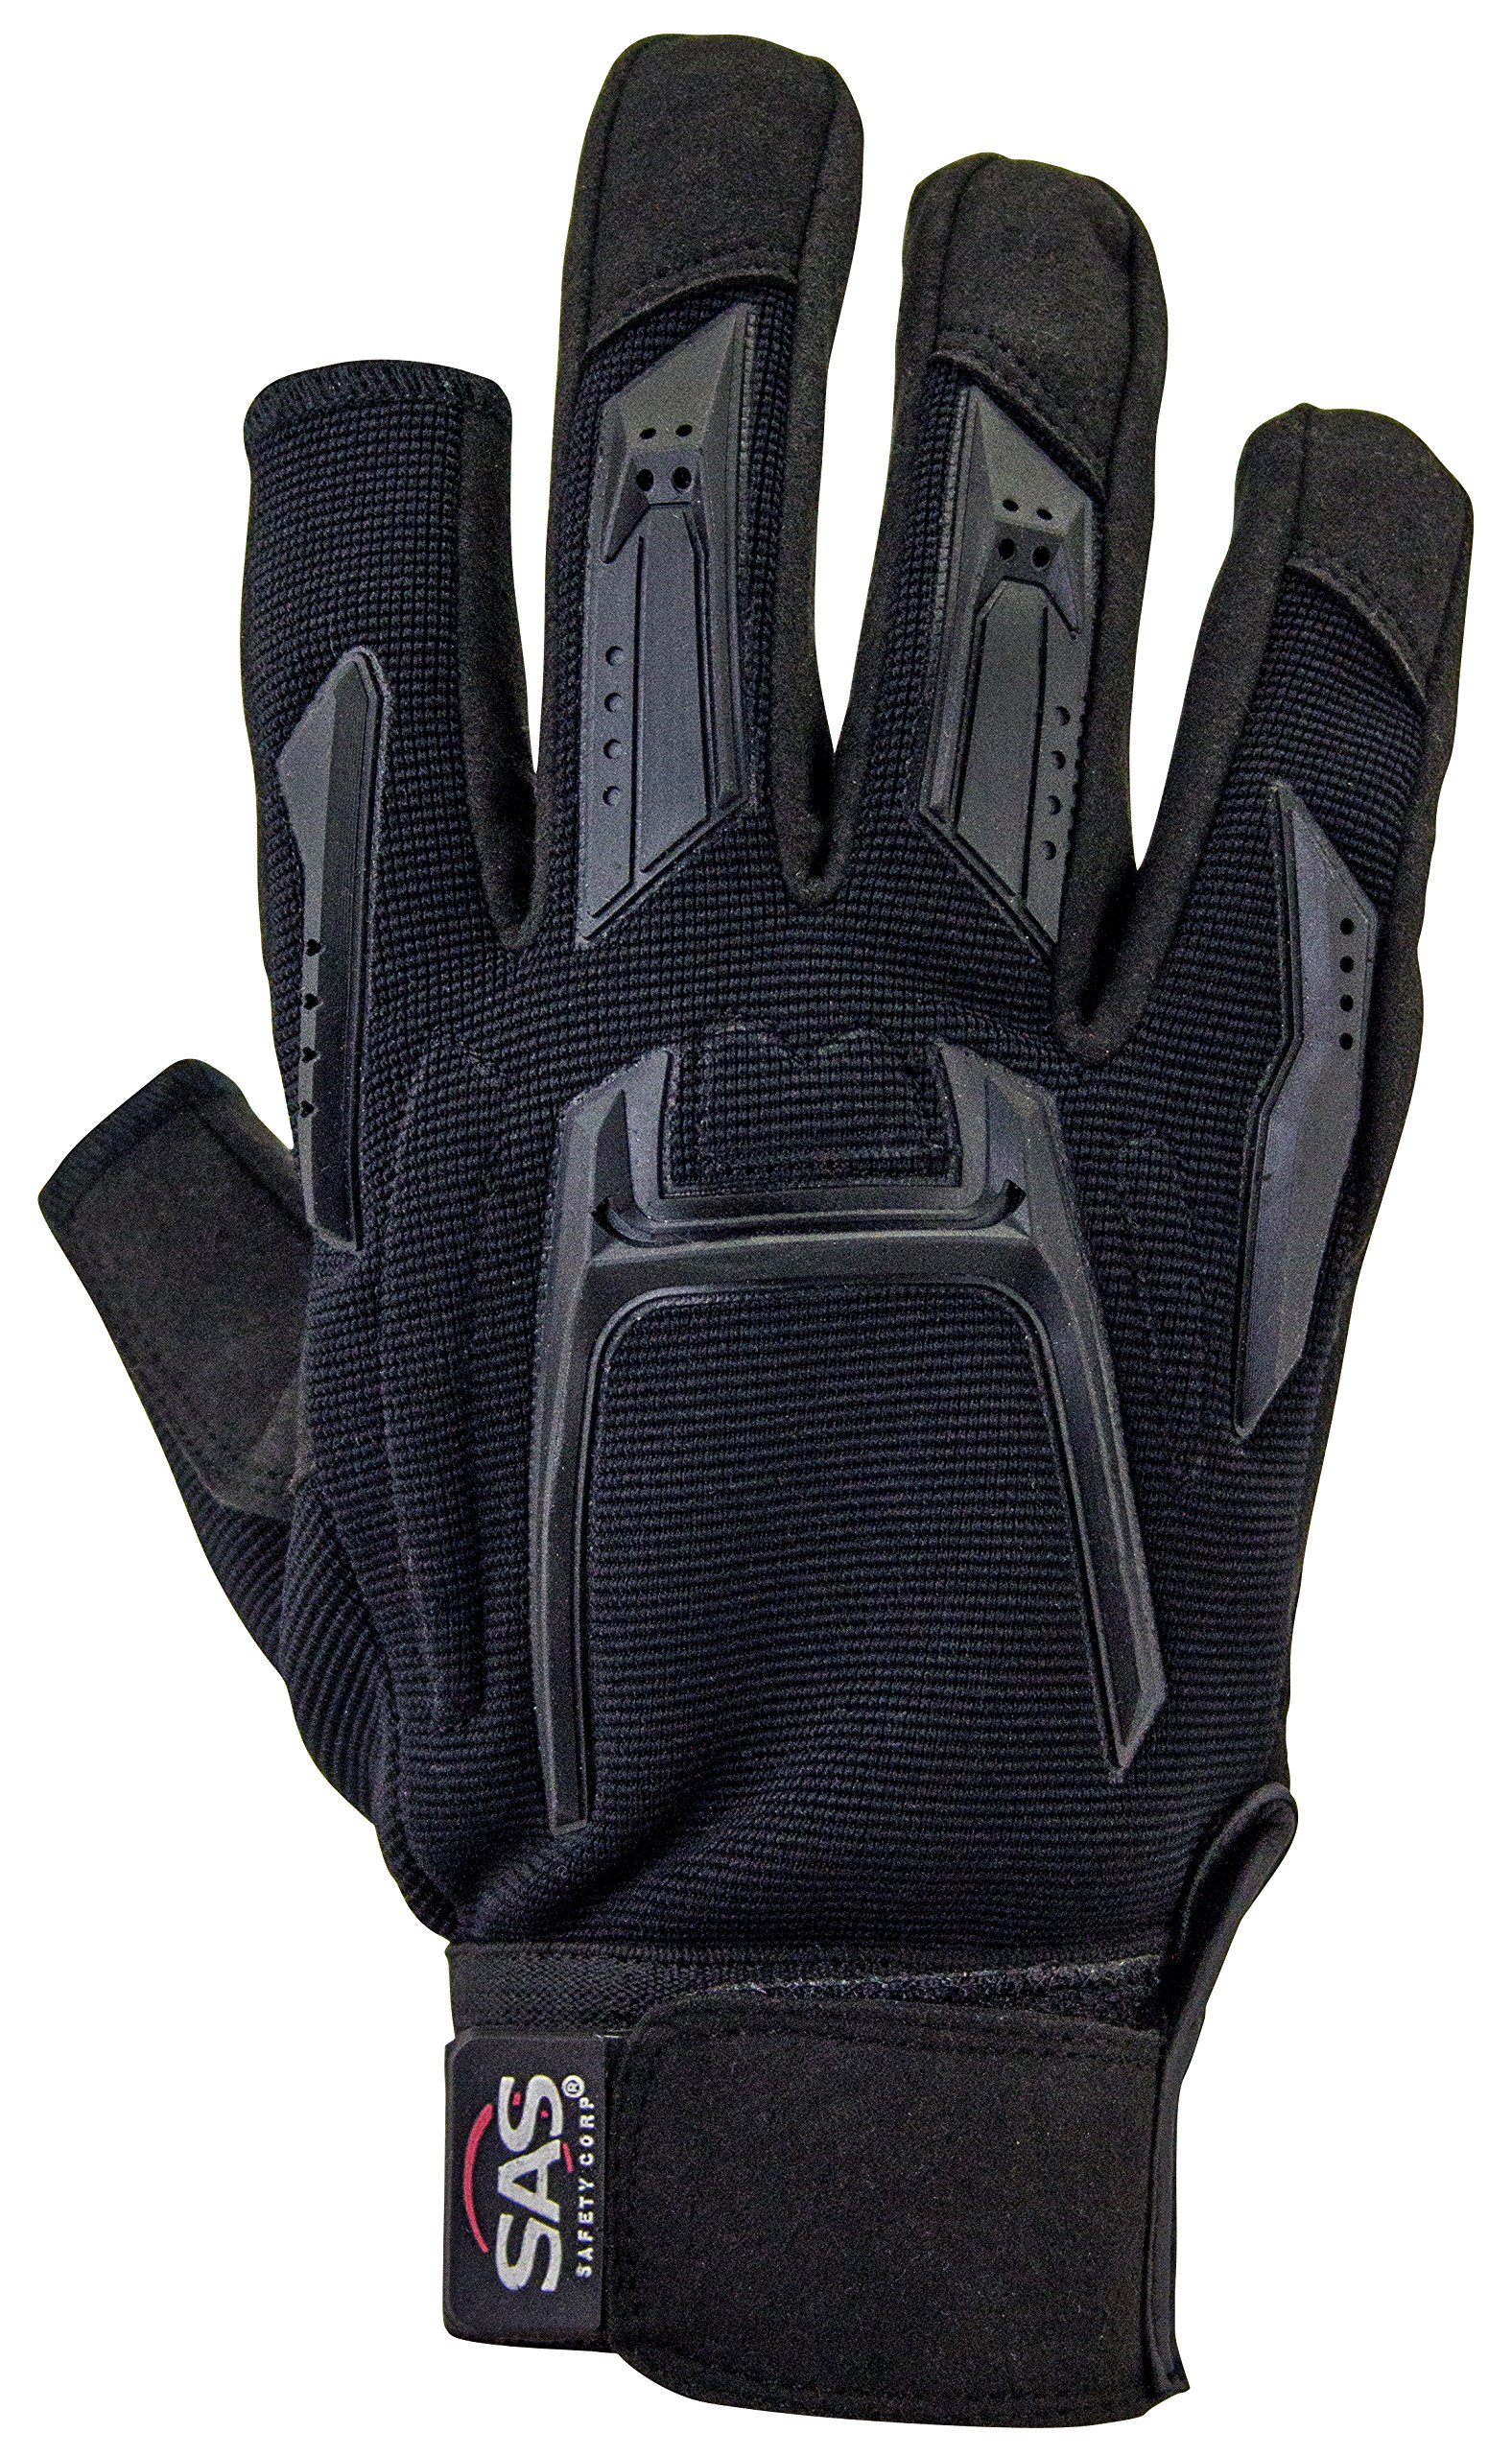 SAS Safety Corp. 6724-23 SAS Safety MX Impact Resistant Glove with Cut-Thumb and Index Finger, Large